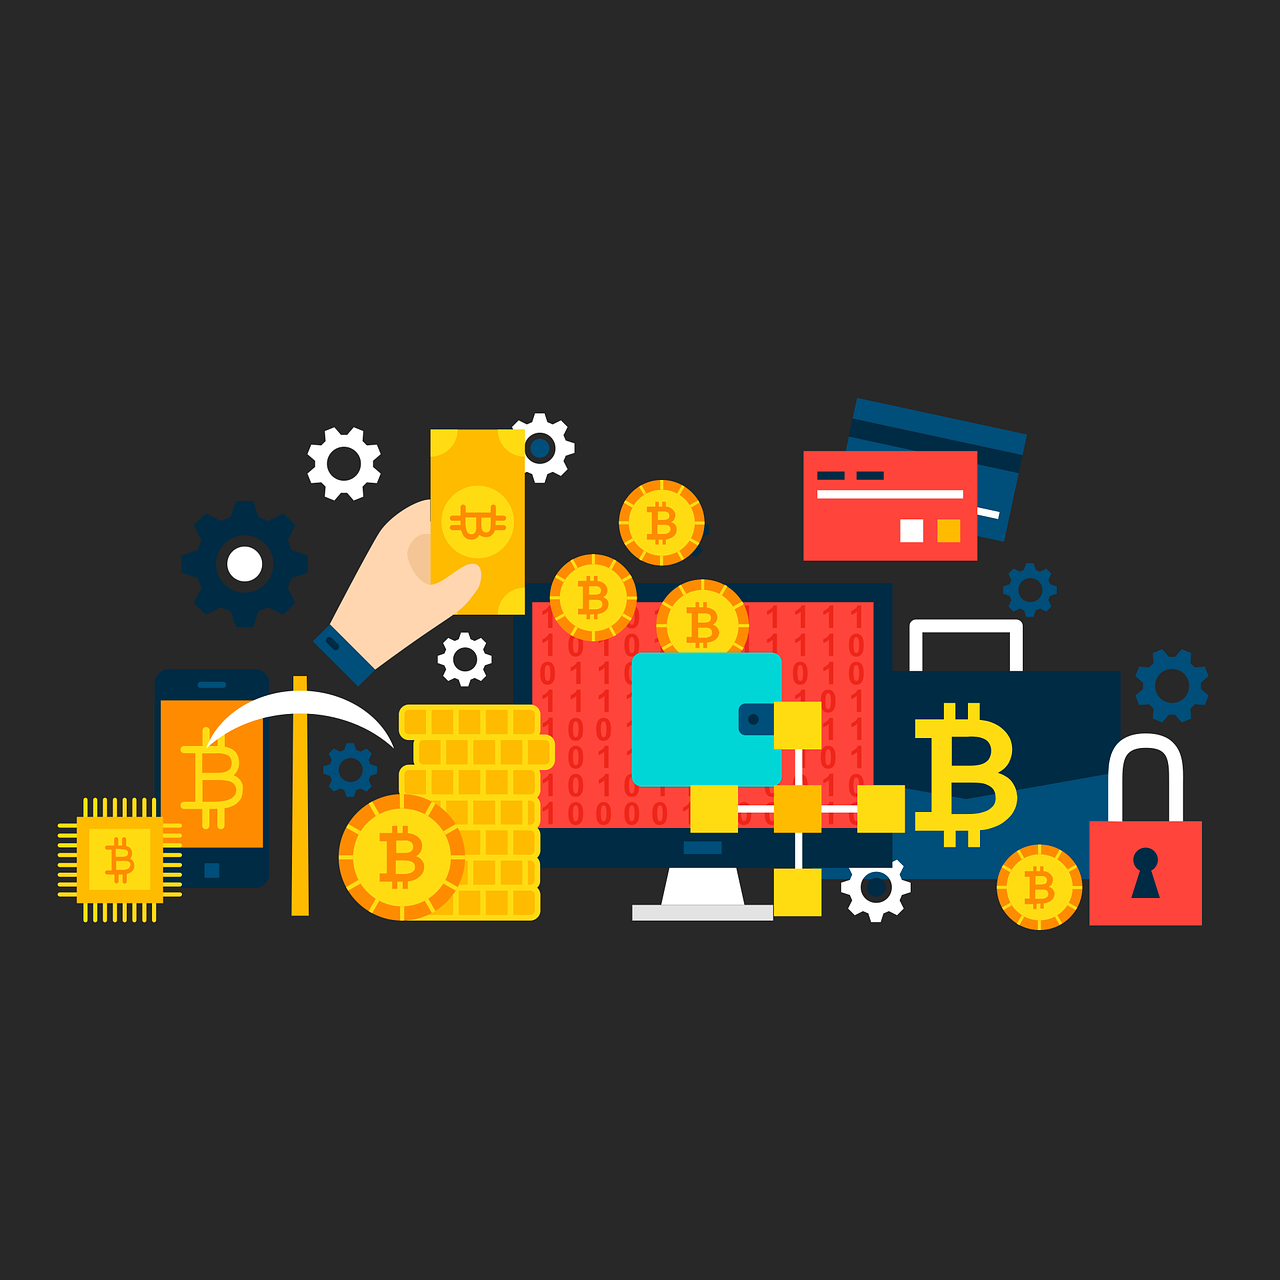 WHAT IS A CRYPTOCURRENCY AND BY WHAT OTHER NAME IS IT KNOWN?